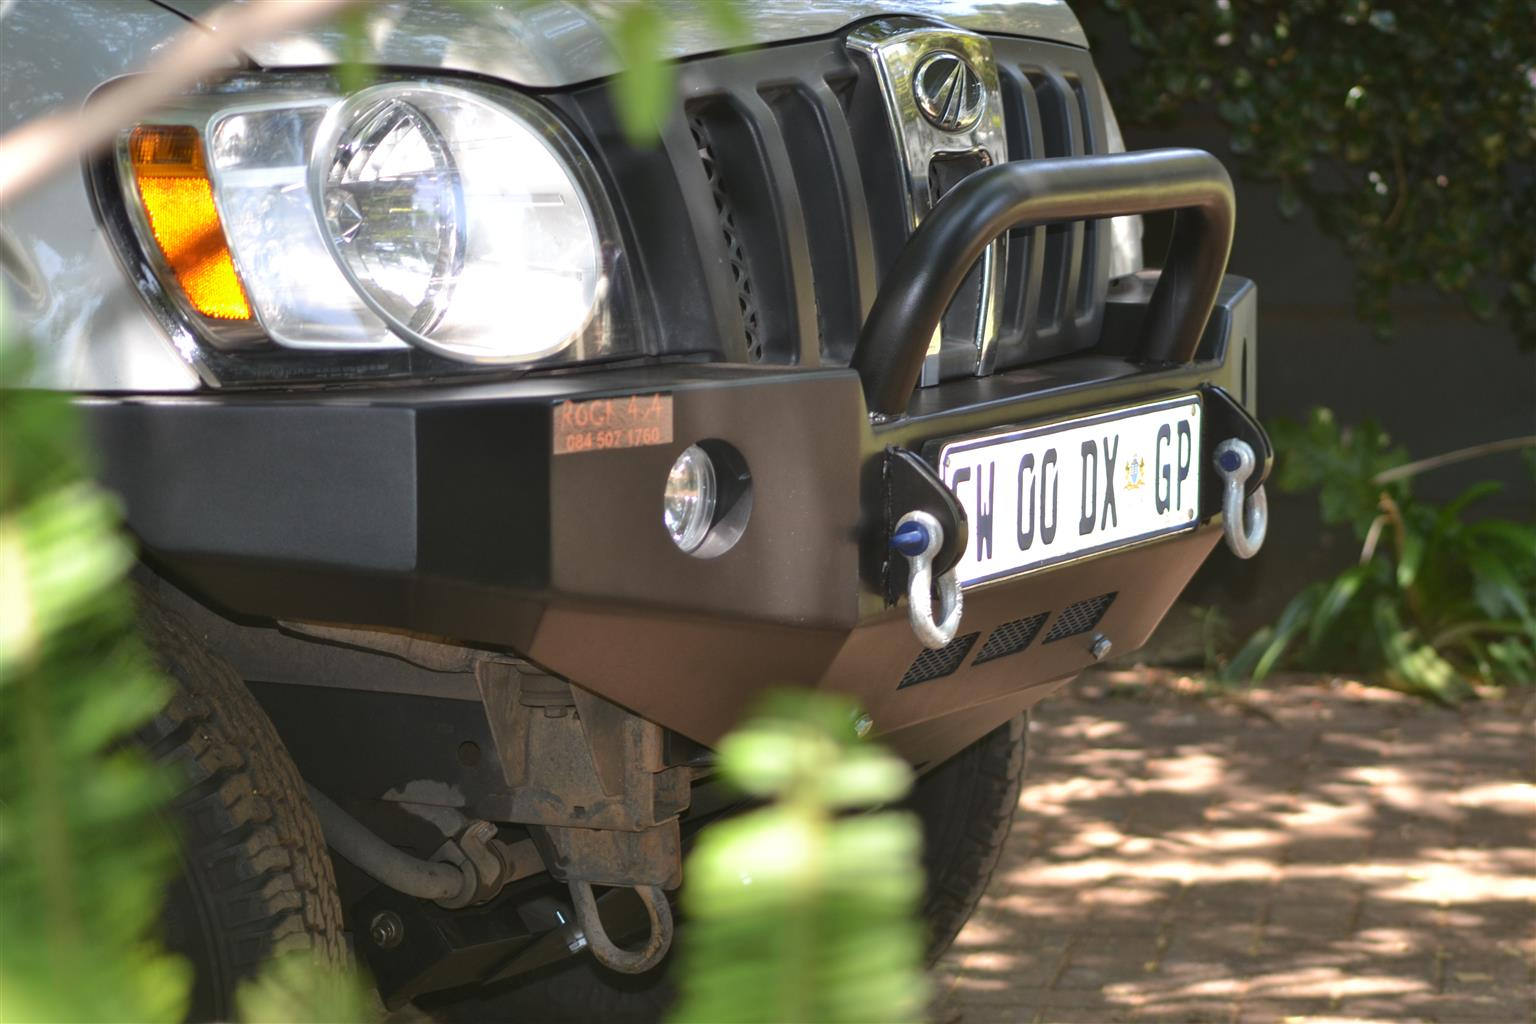 Mahindra Scorpio Steel Replacement Bumpers